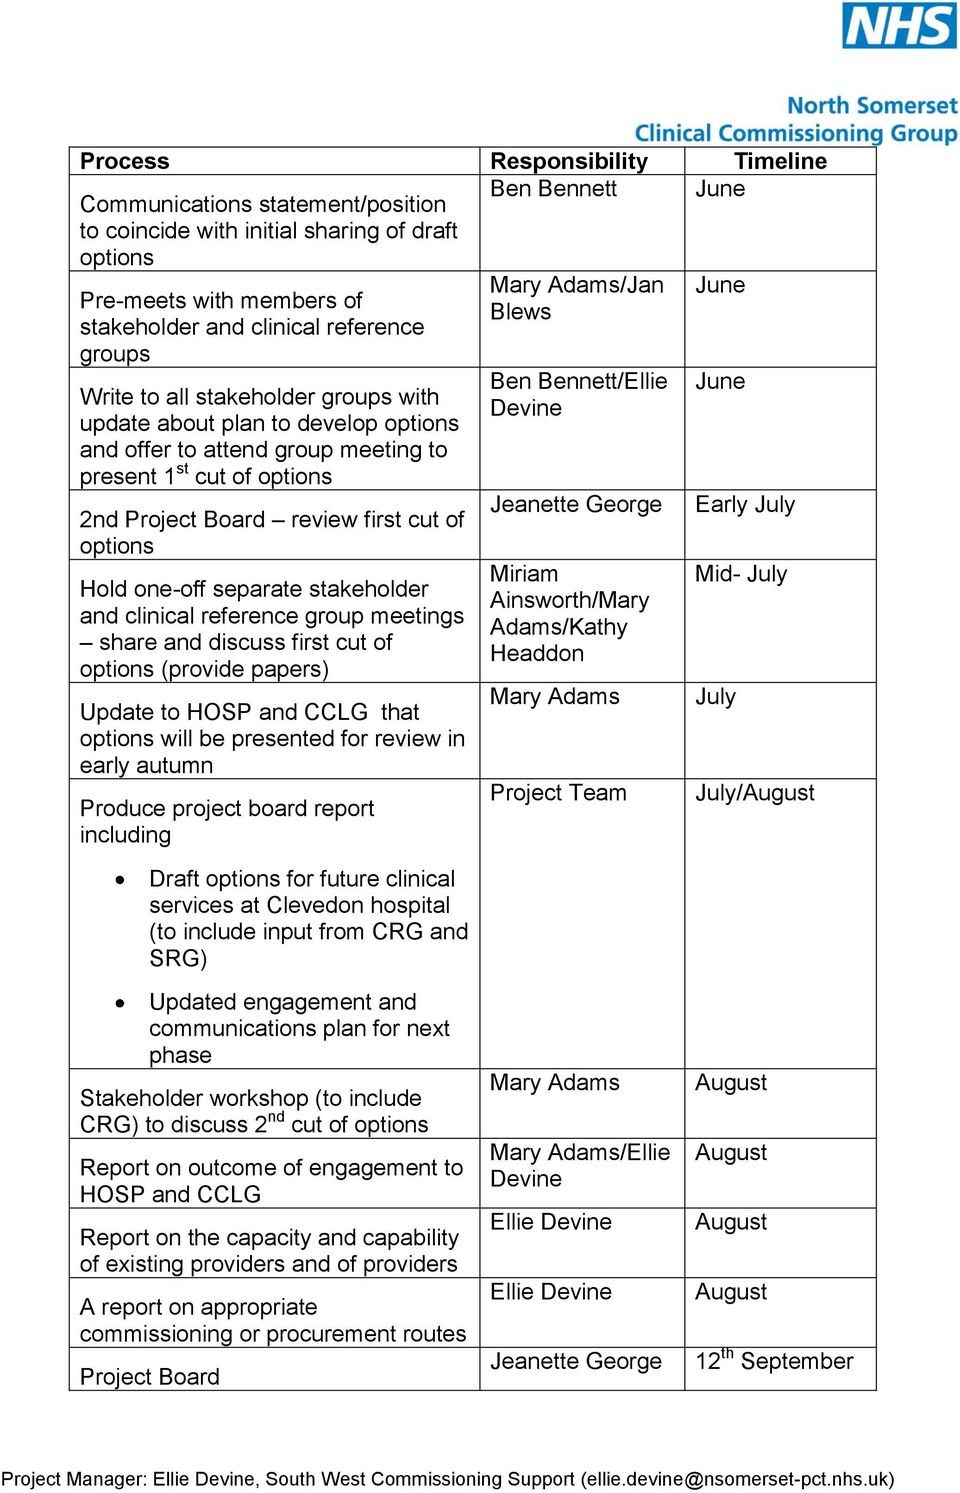 separate stakeholder and clinical reference group meetings share and discuss first cut of options (provide papers) Update to HOSP and CCLG that options will be presented for review in early autumn